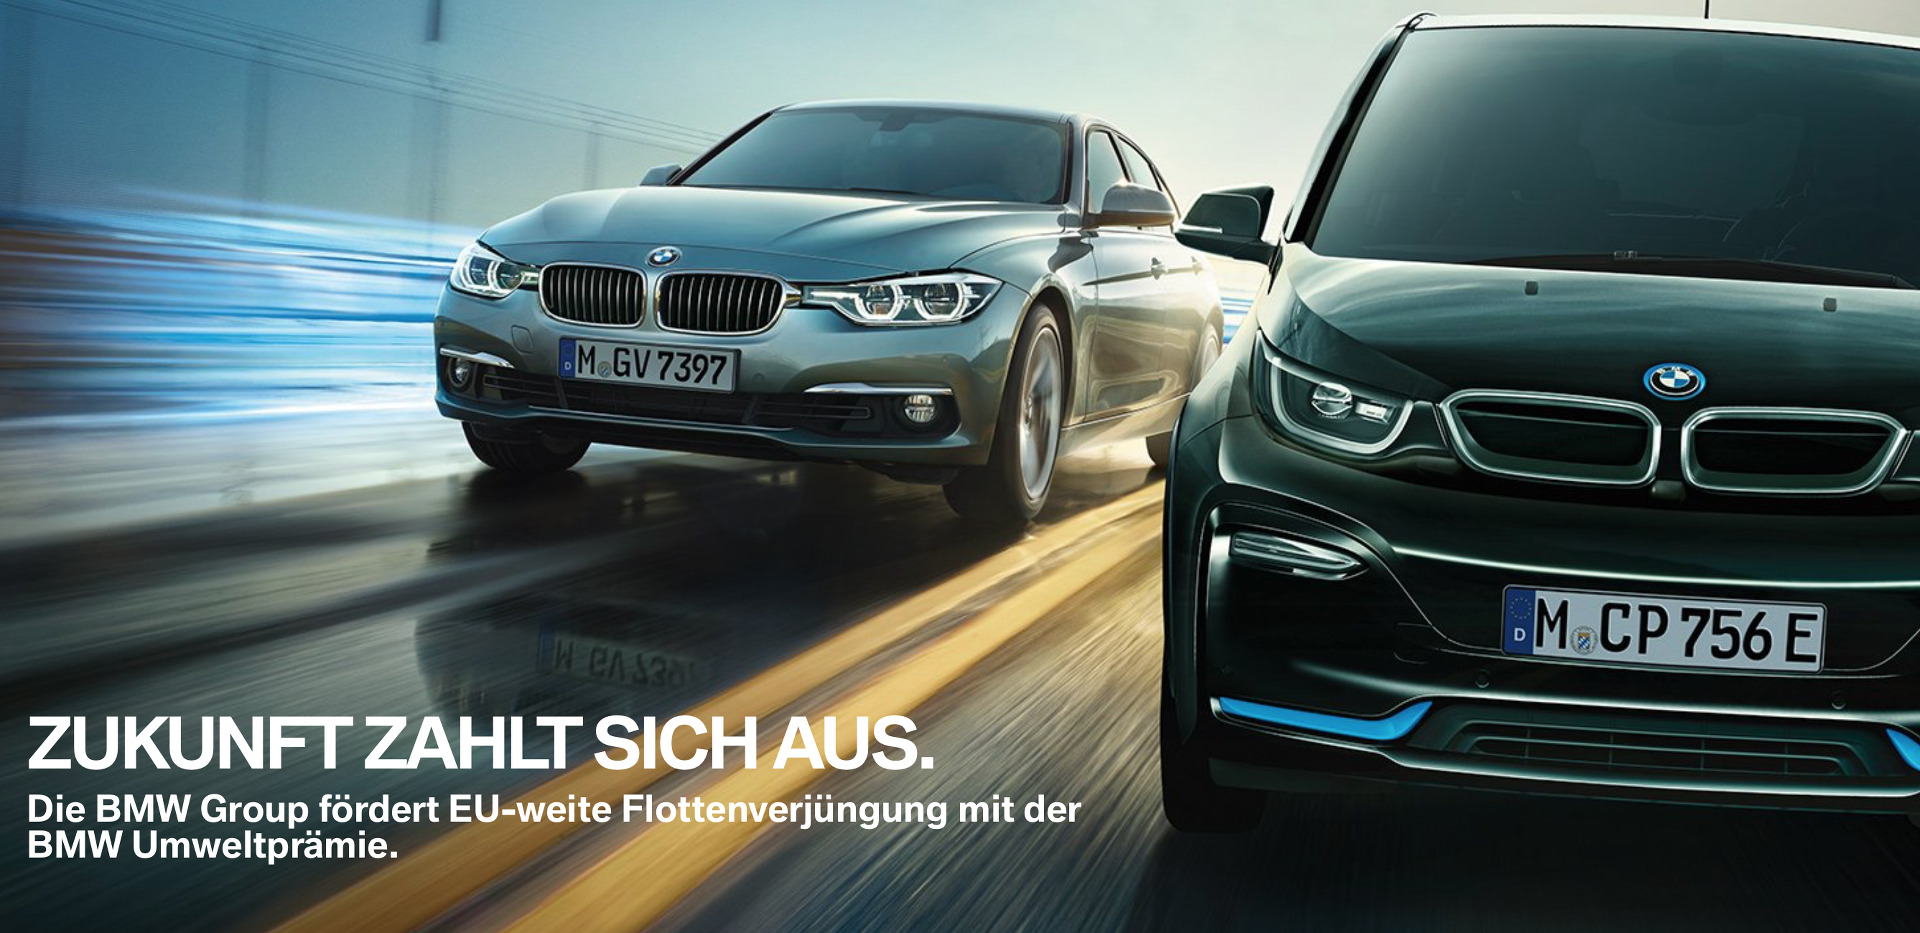 umweltpr mie bmw verl ngert bis auch f r euro 5